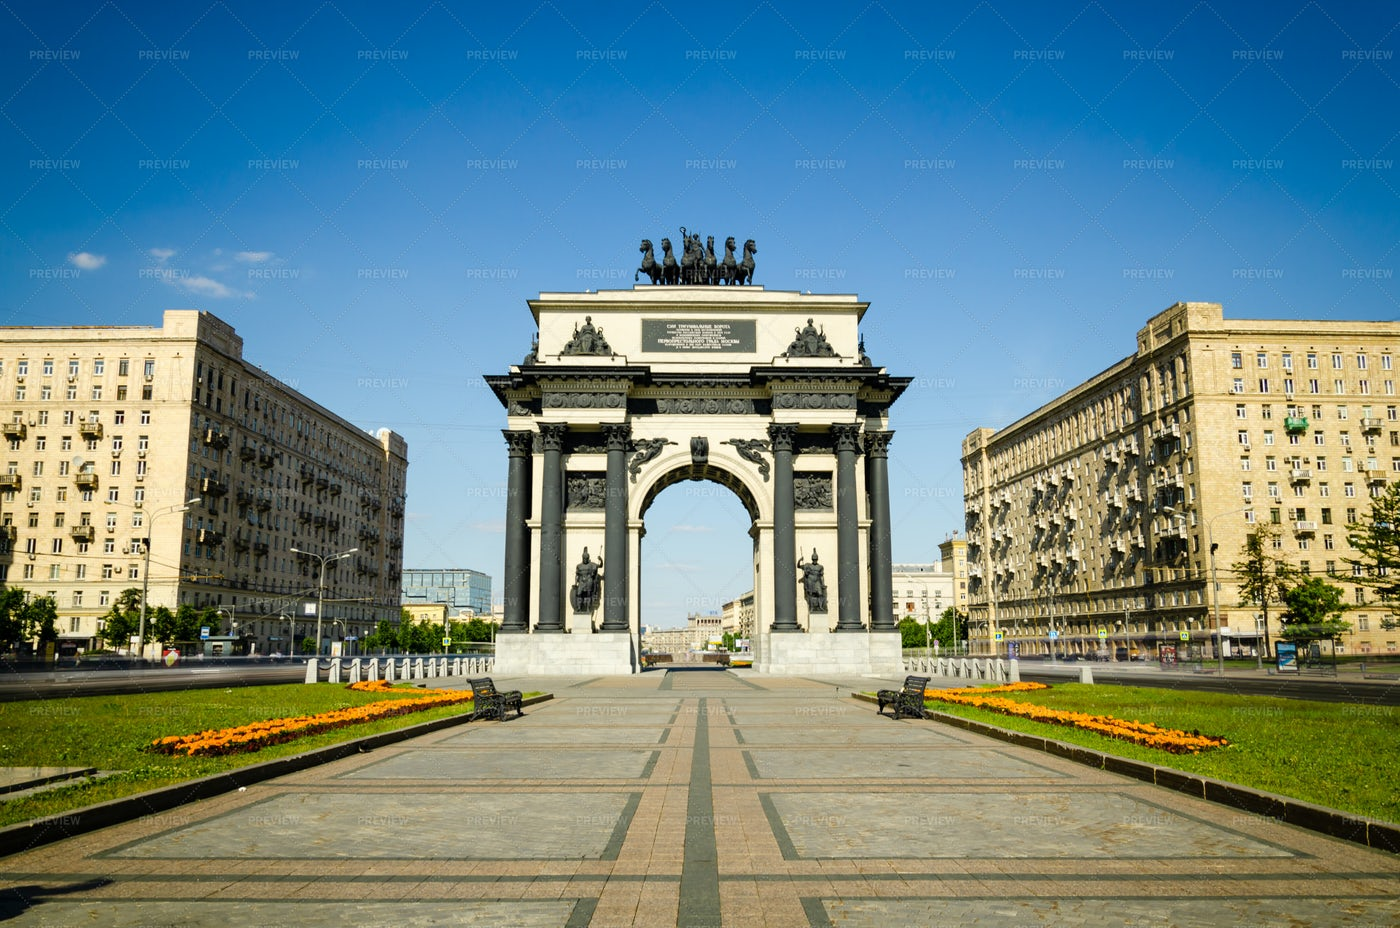 Triumphal Arch Of Moscow With Blue Sky: Stock Photos